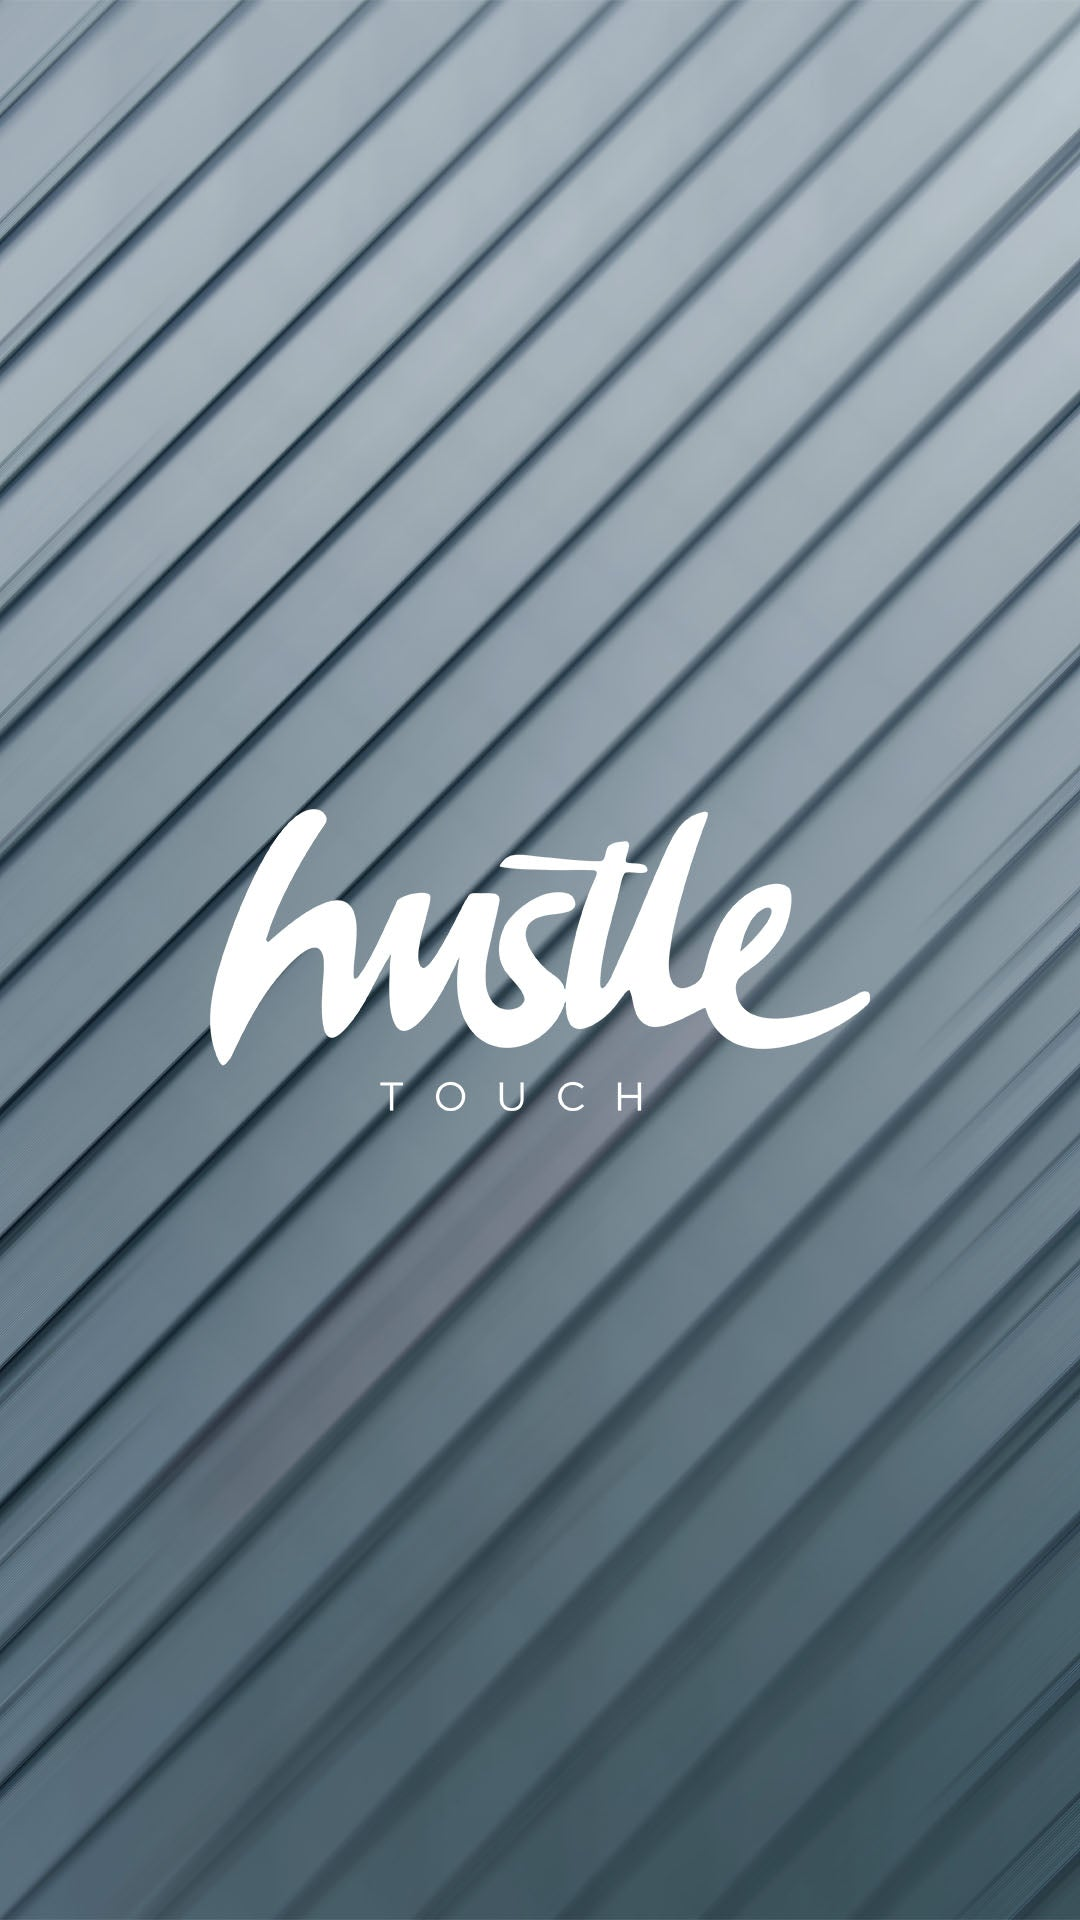 Phone Hustle Touch Wallpaper 025